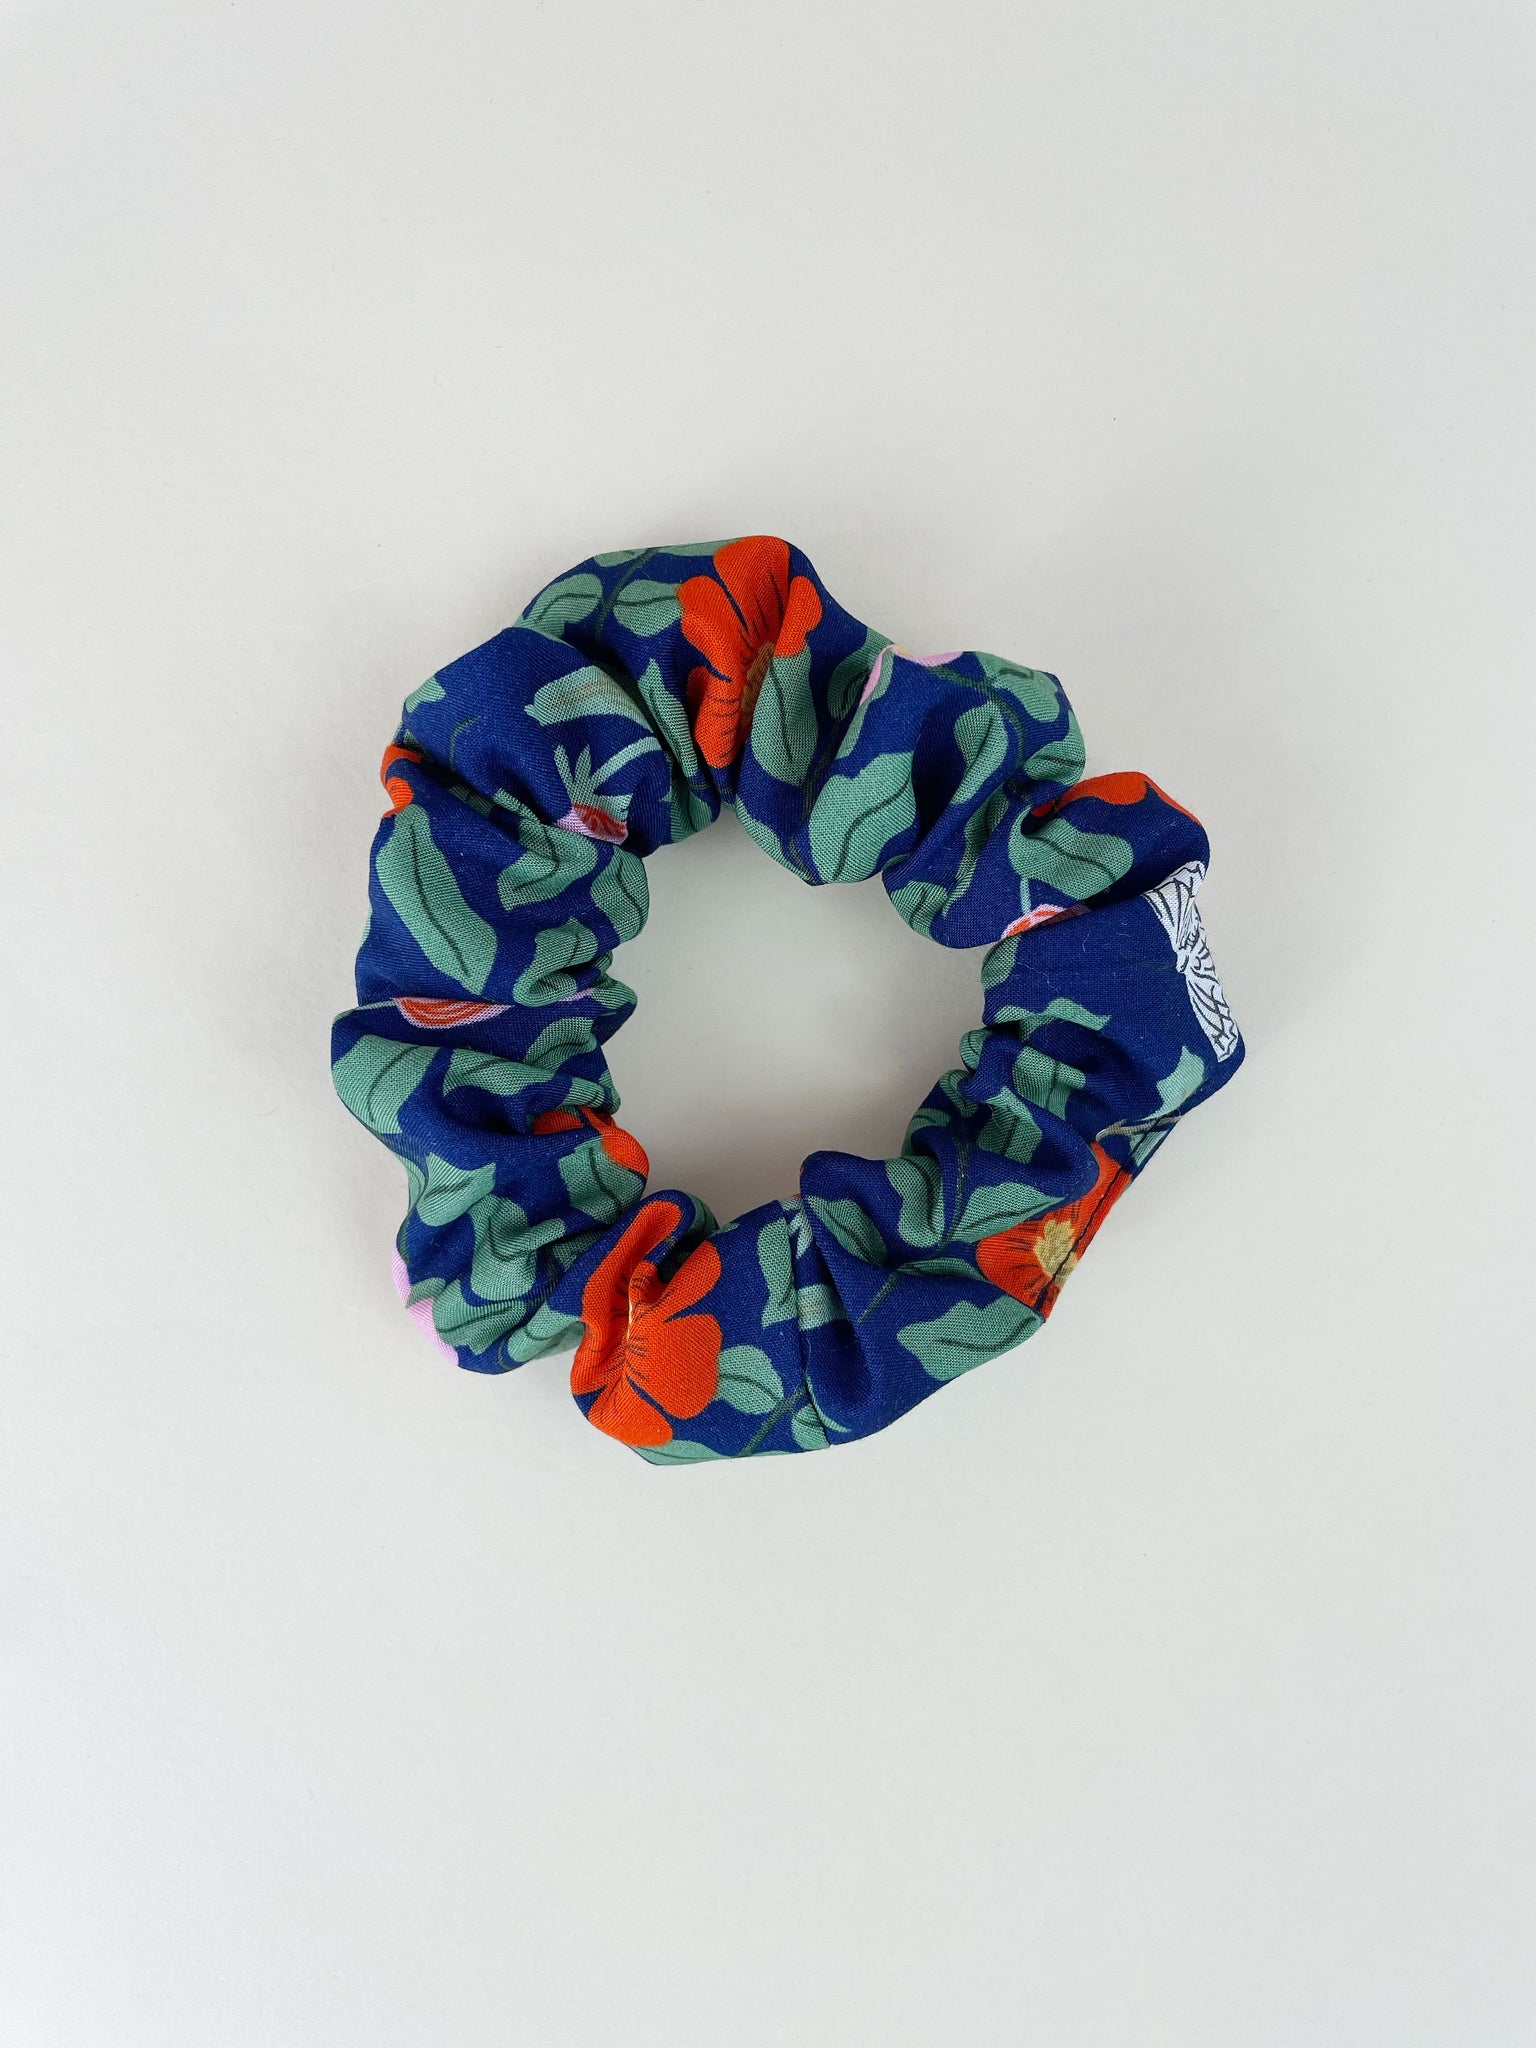 A navy blue scrunchie on an off-white surface. The scrunchie has red and pink flowers with green leaves and white butterflies.